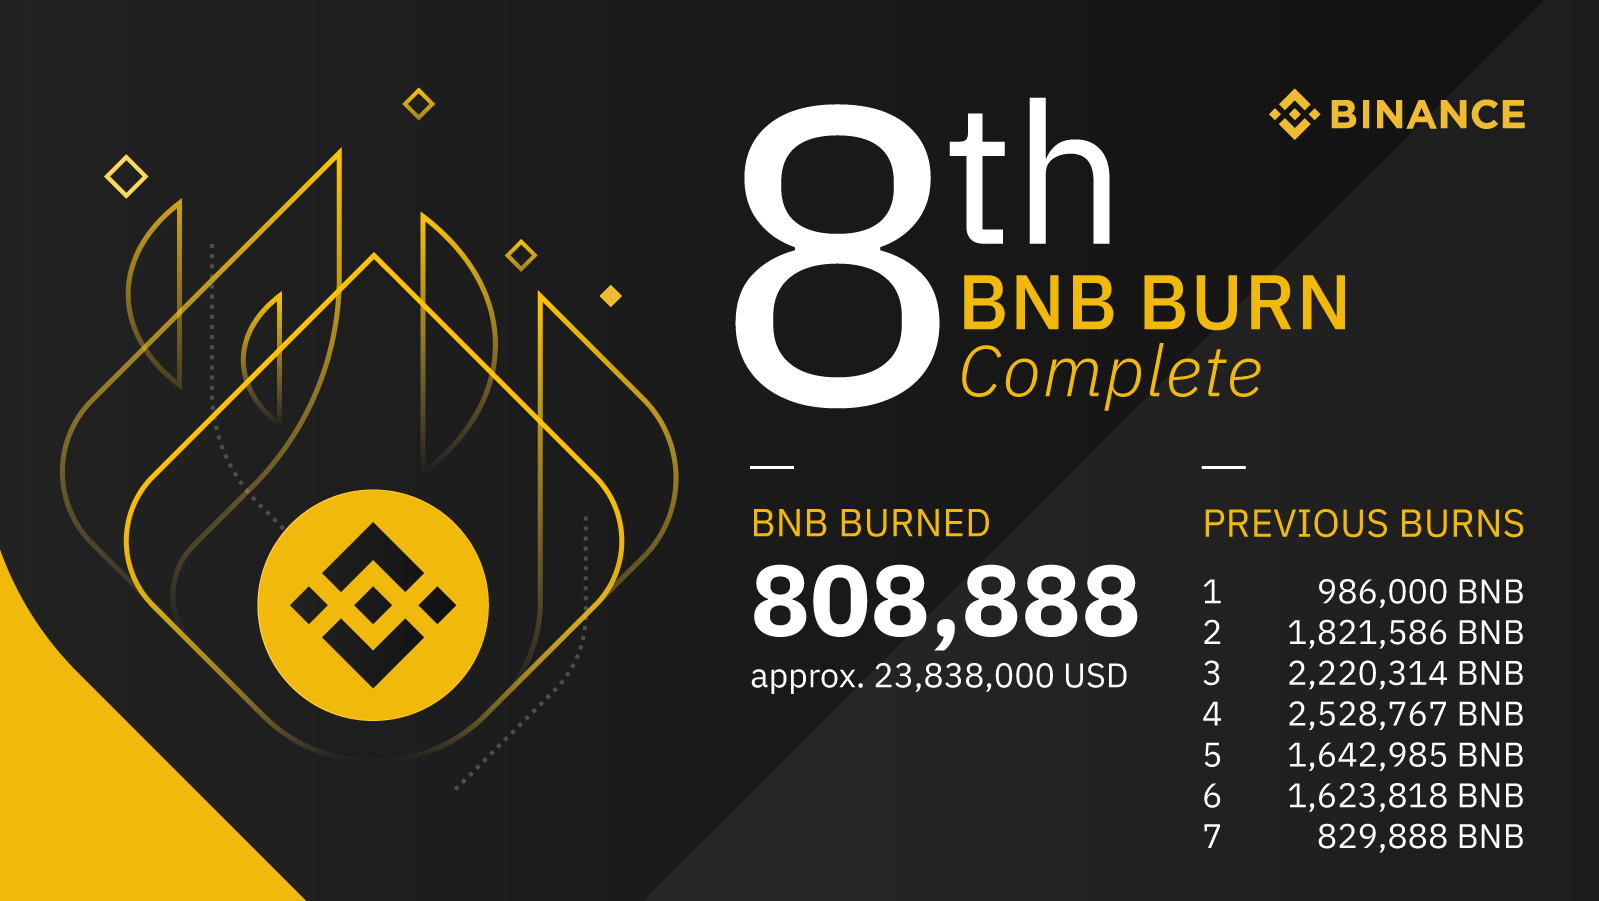 Binance Team Gives Up All Their Token Supply to Binance's 8th Token Burn